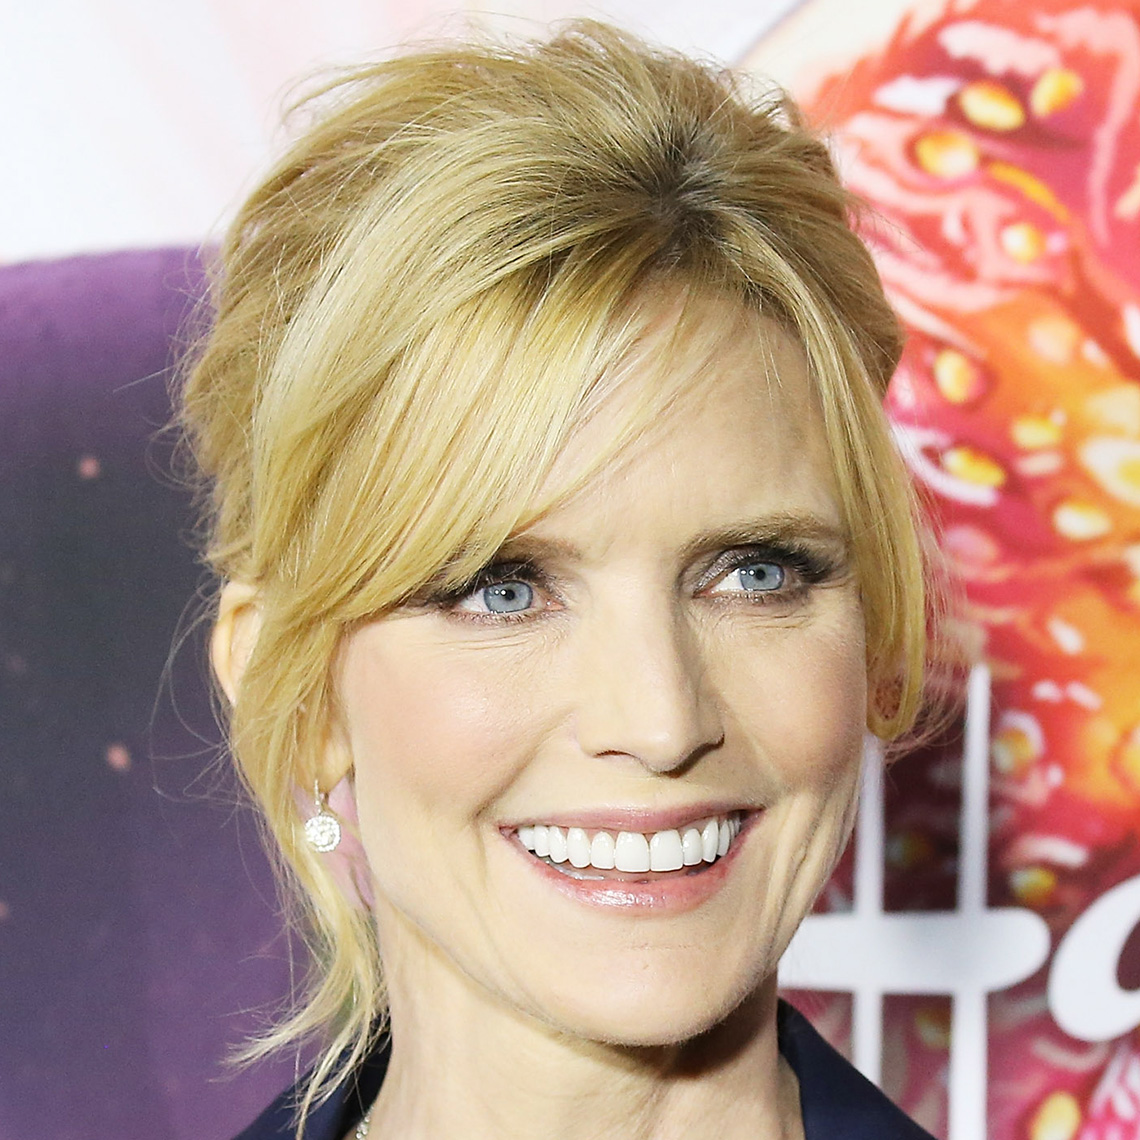 Courtney Thorne-Smith's updo with blonde side swept bangs